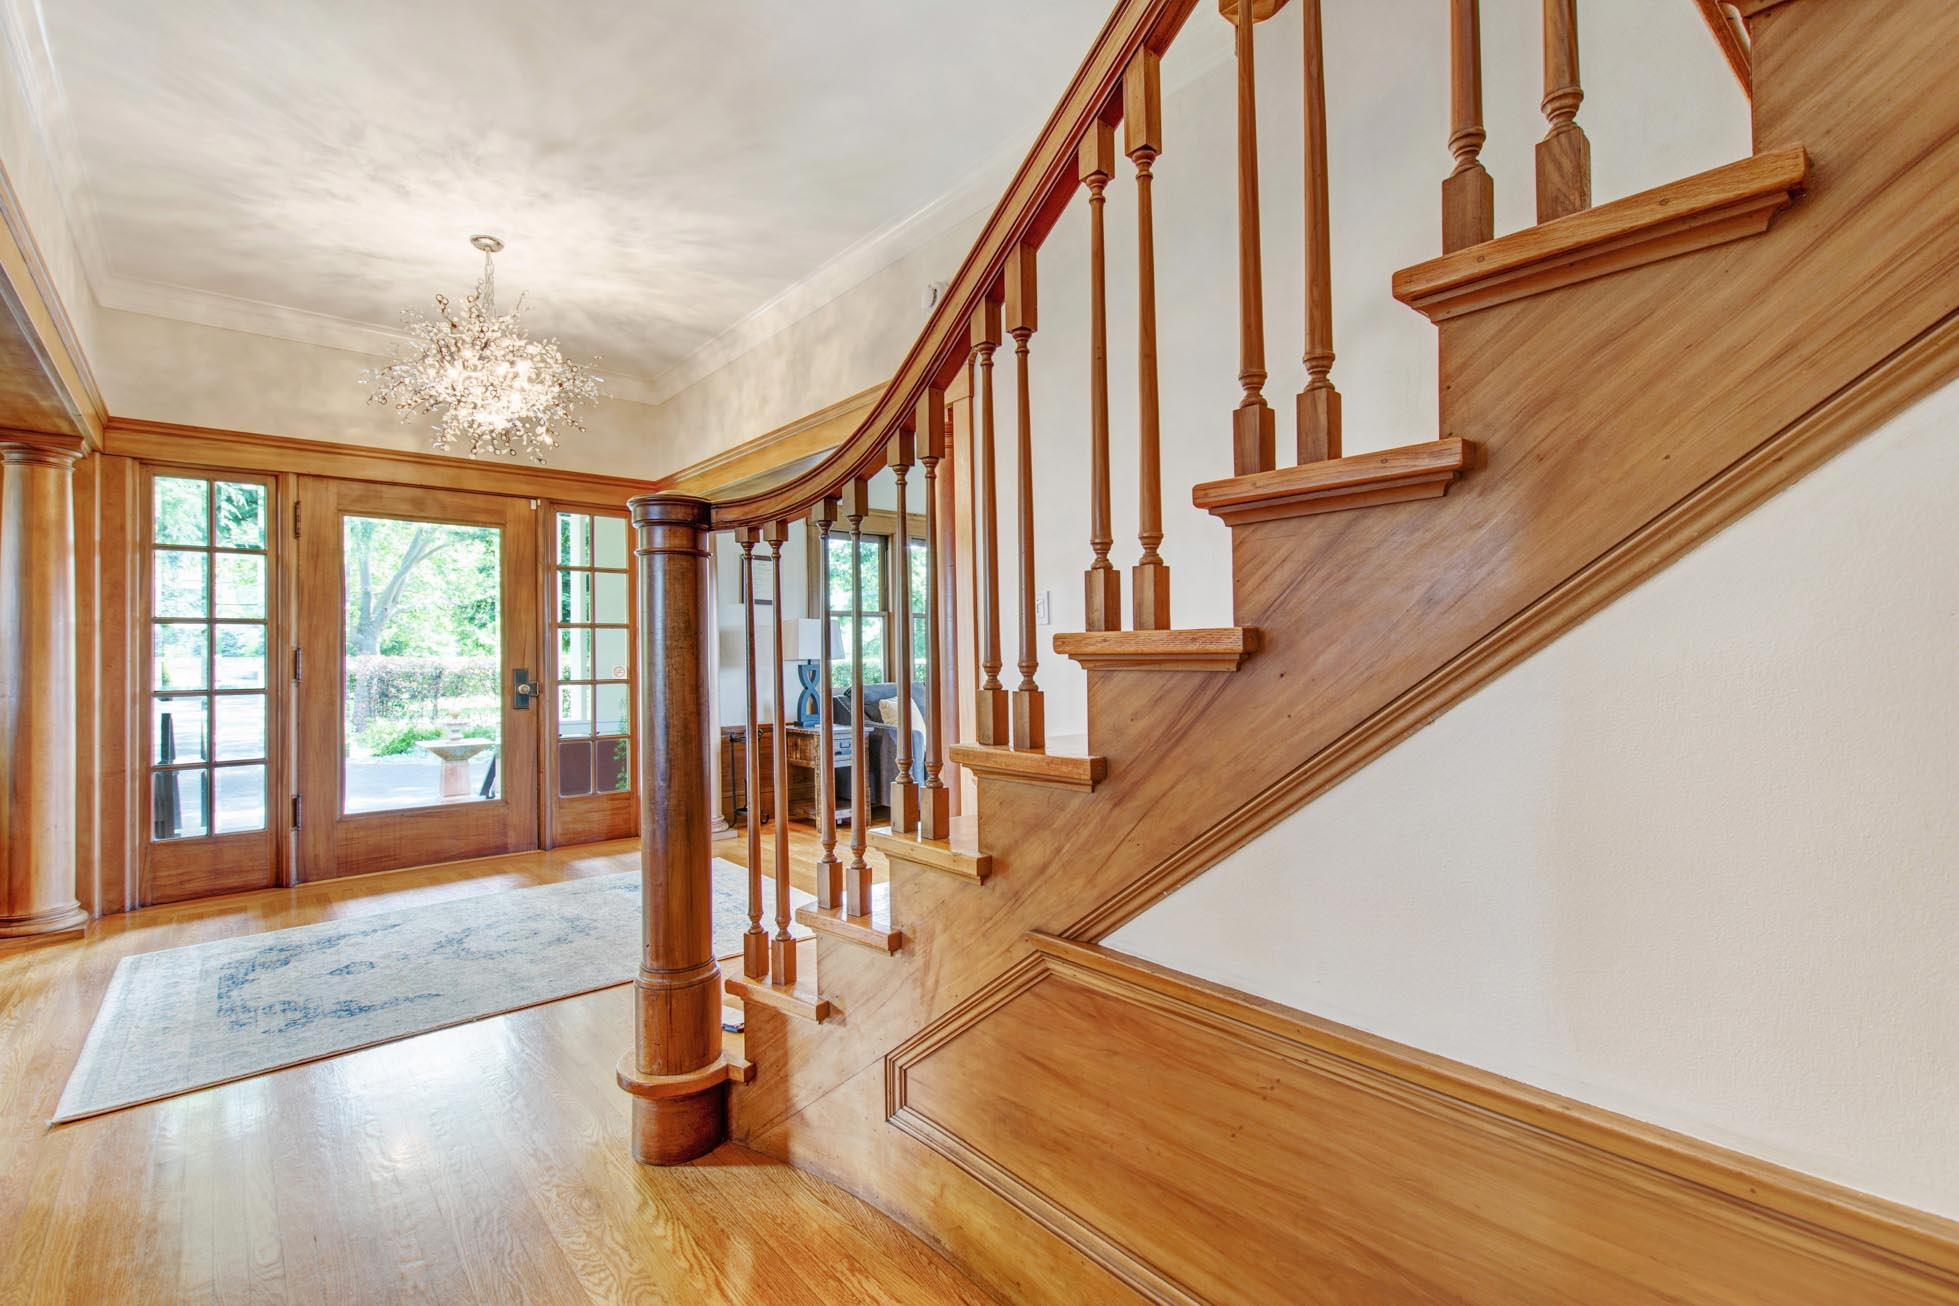 Foyer and side view of stairs at historic Casa Bella estate in Kenwood